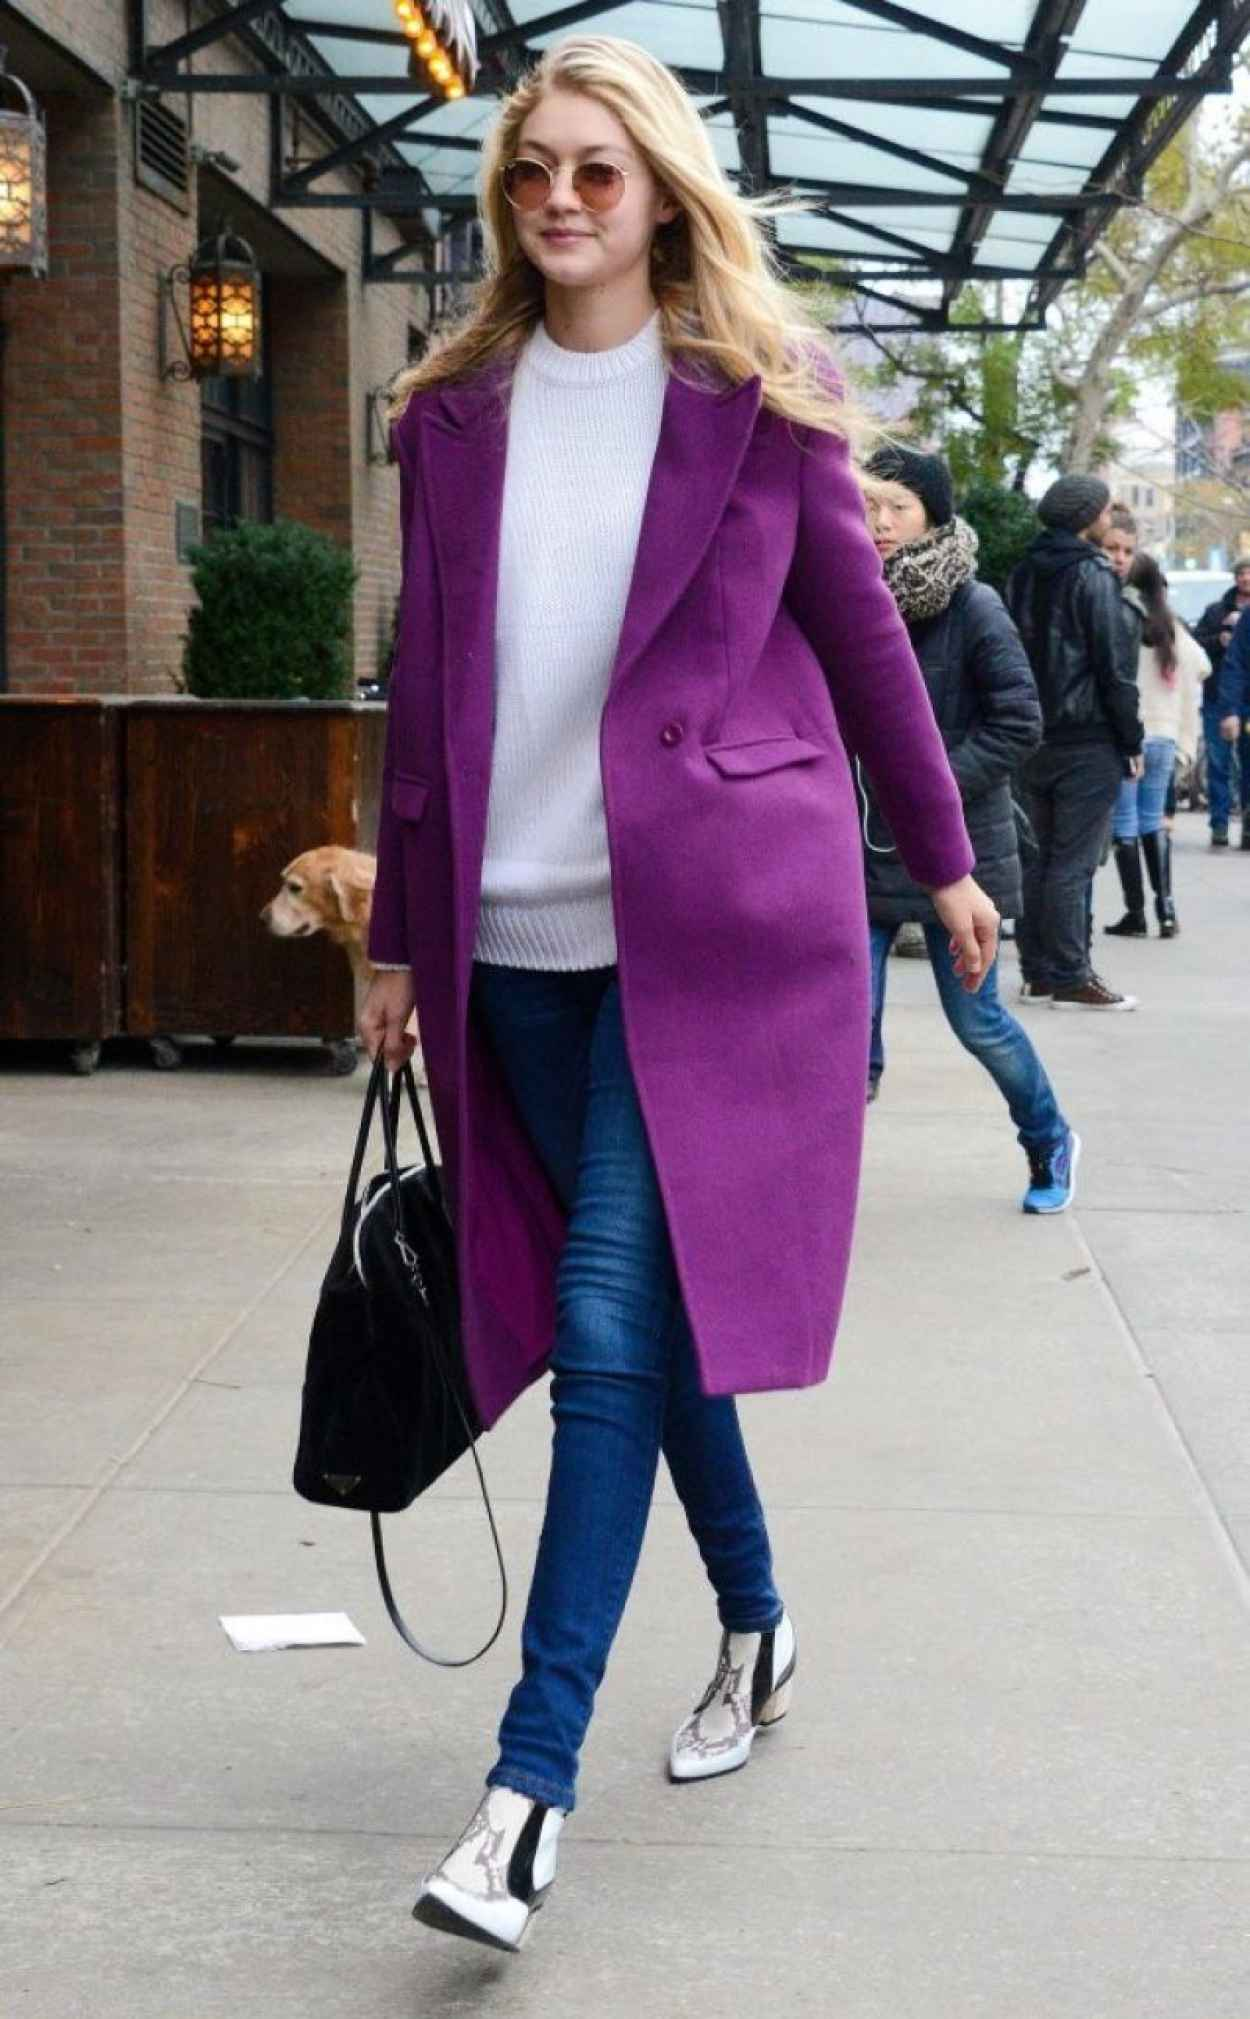 Gigi Hadid Street Fashion - Out for Lunch in New York City - November 2015-1